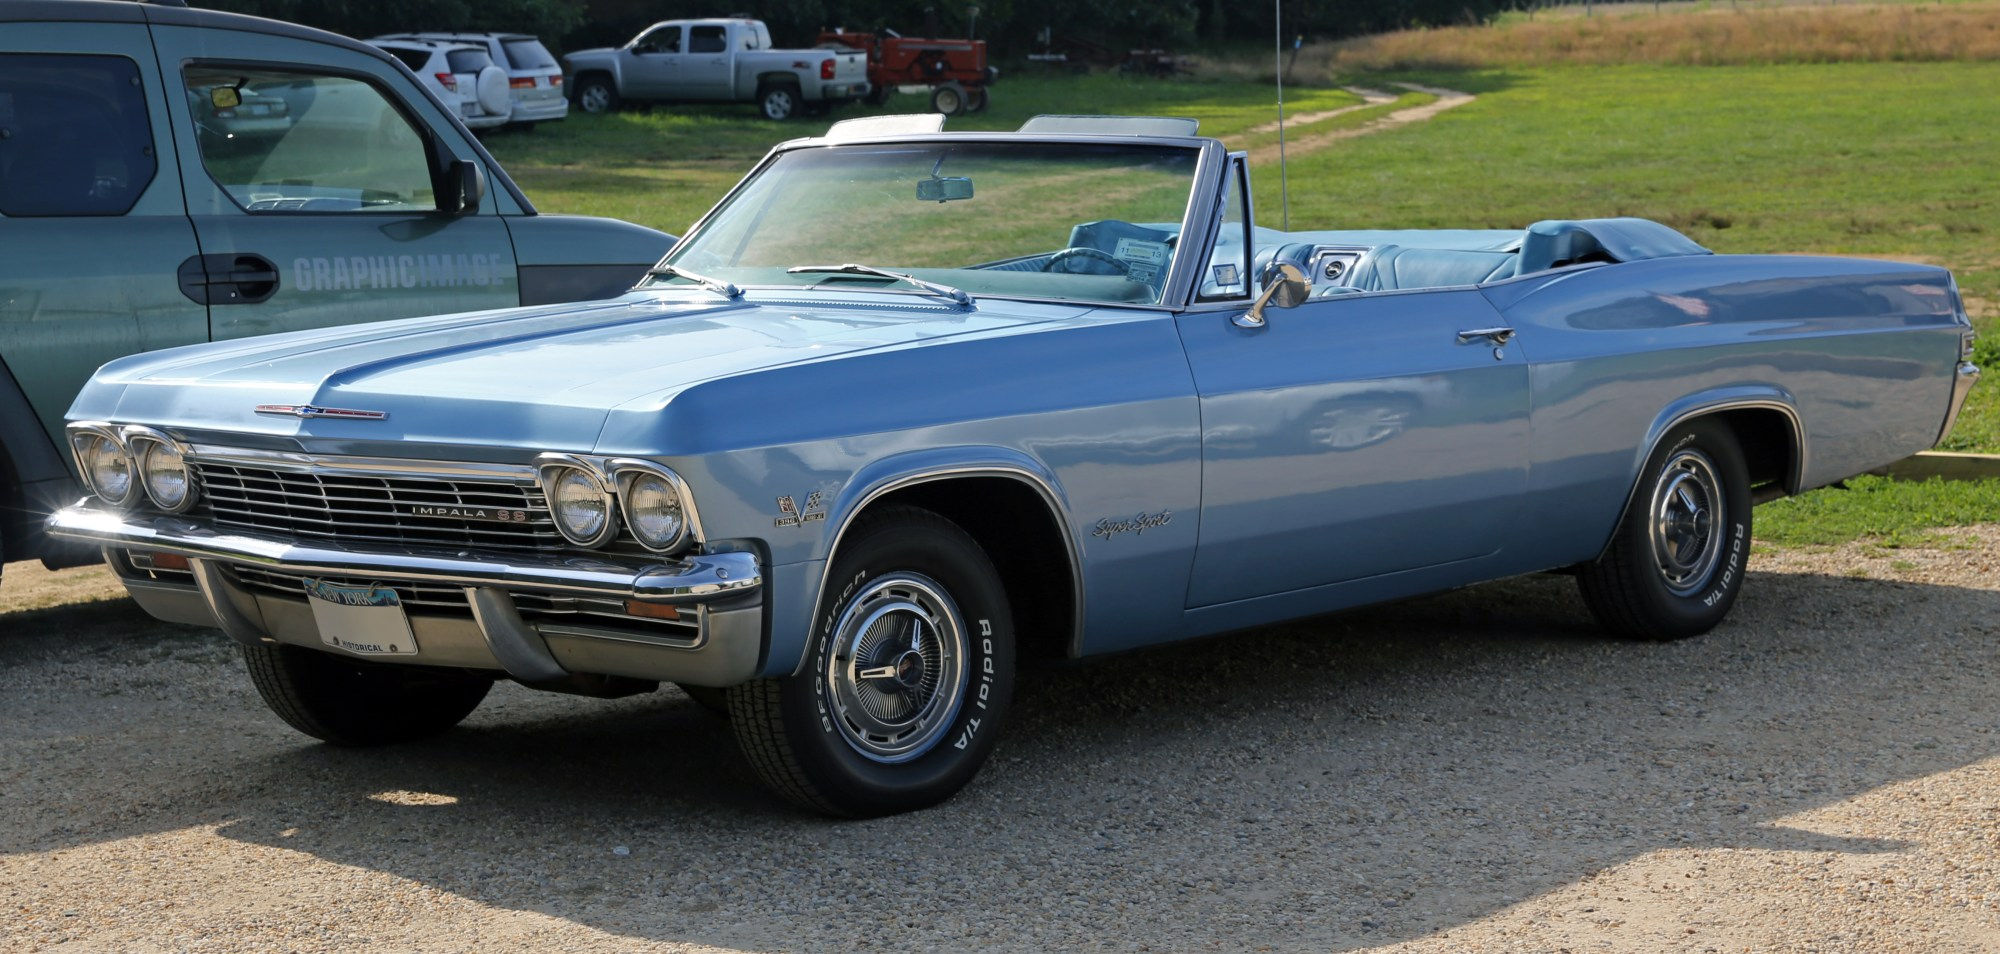 hight resolution of file 1965 chevrolet impala ss convertible front jpg